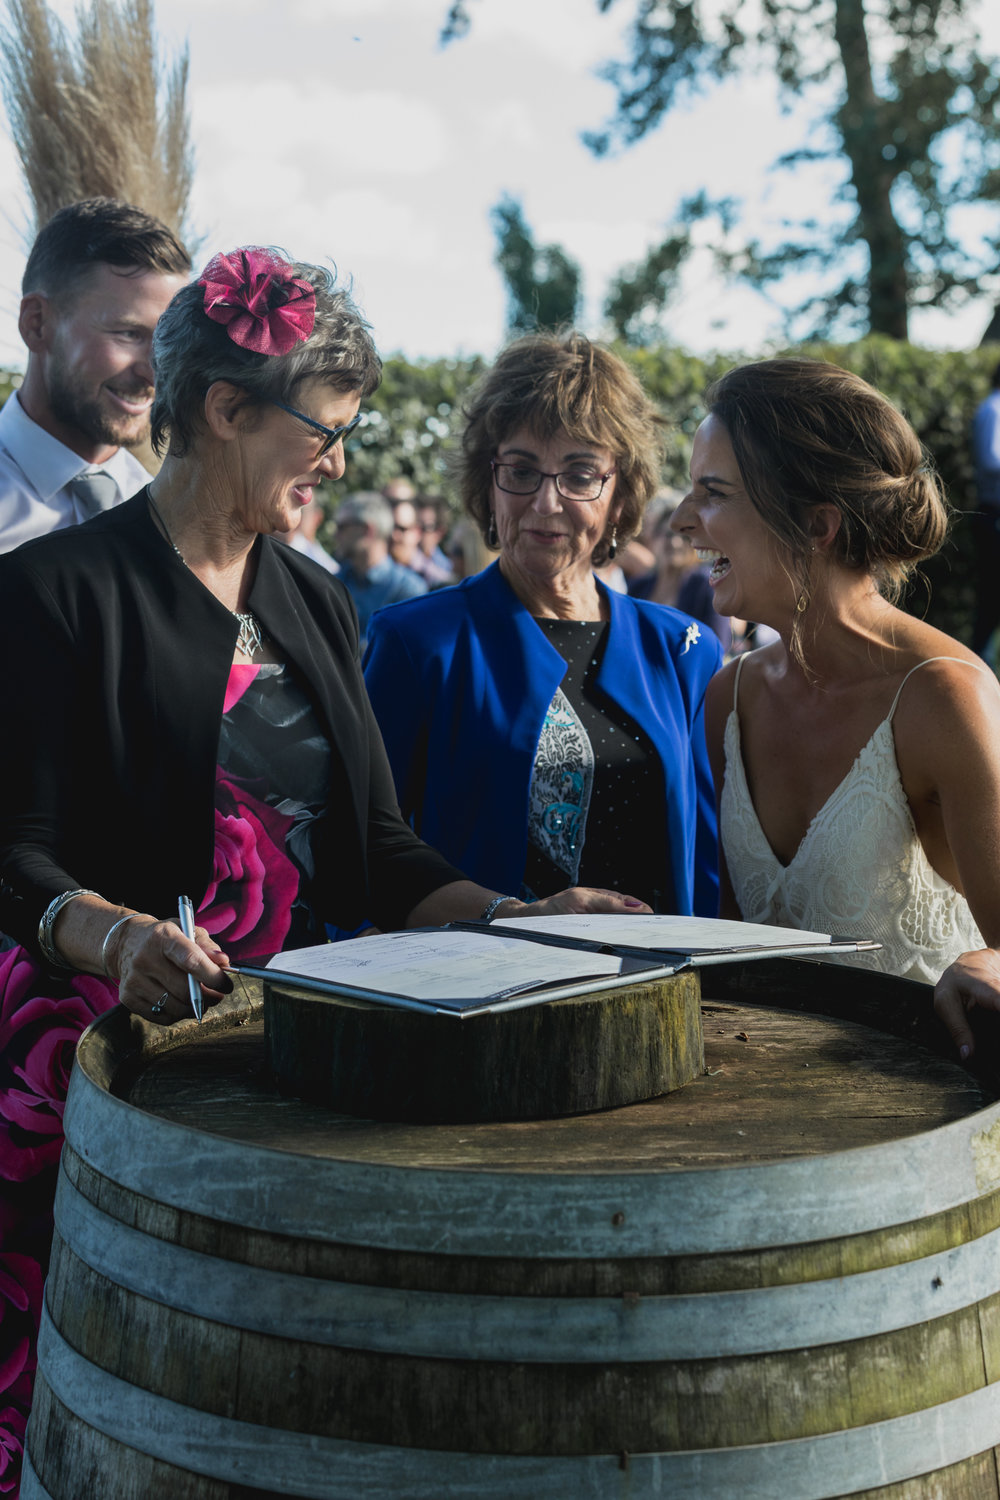 wedding-at-the-red-barn-new-zealand-wedding-photographer-mums-signing-register.jpg